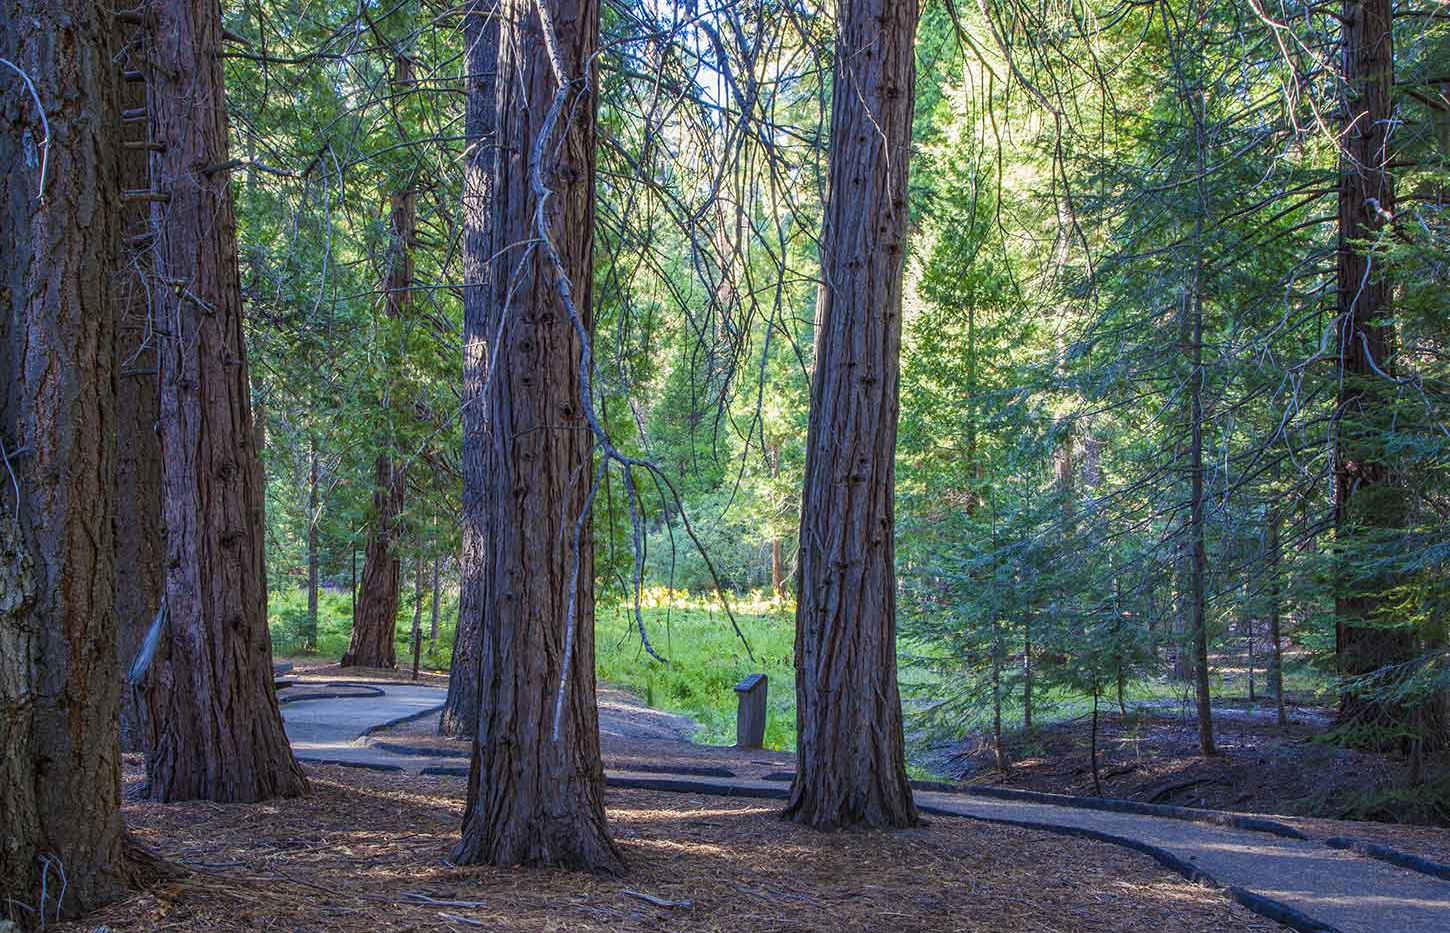 Trail of 100 Giants Paved Trail through the Trees